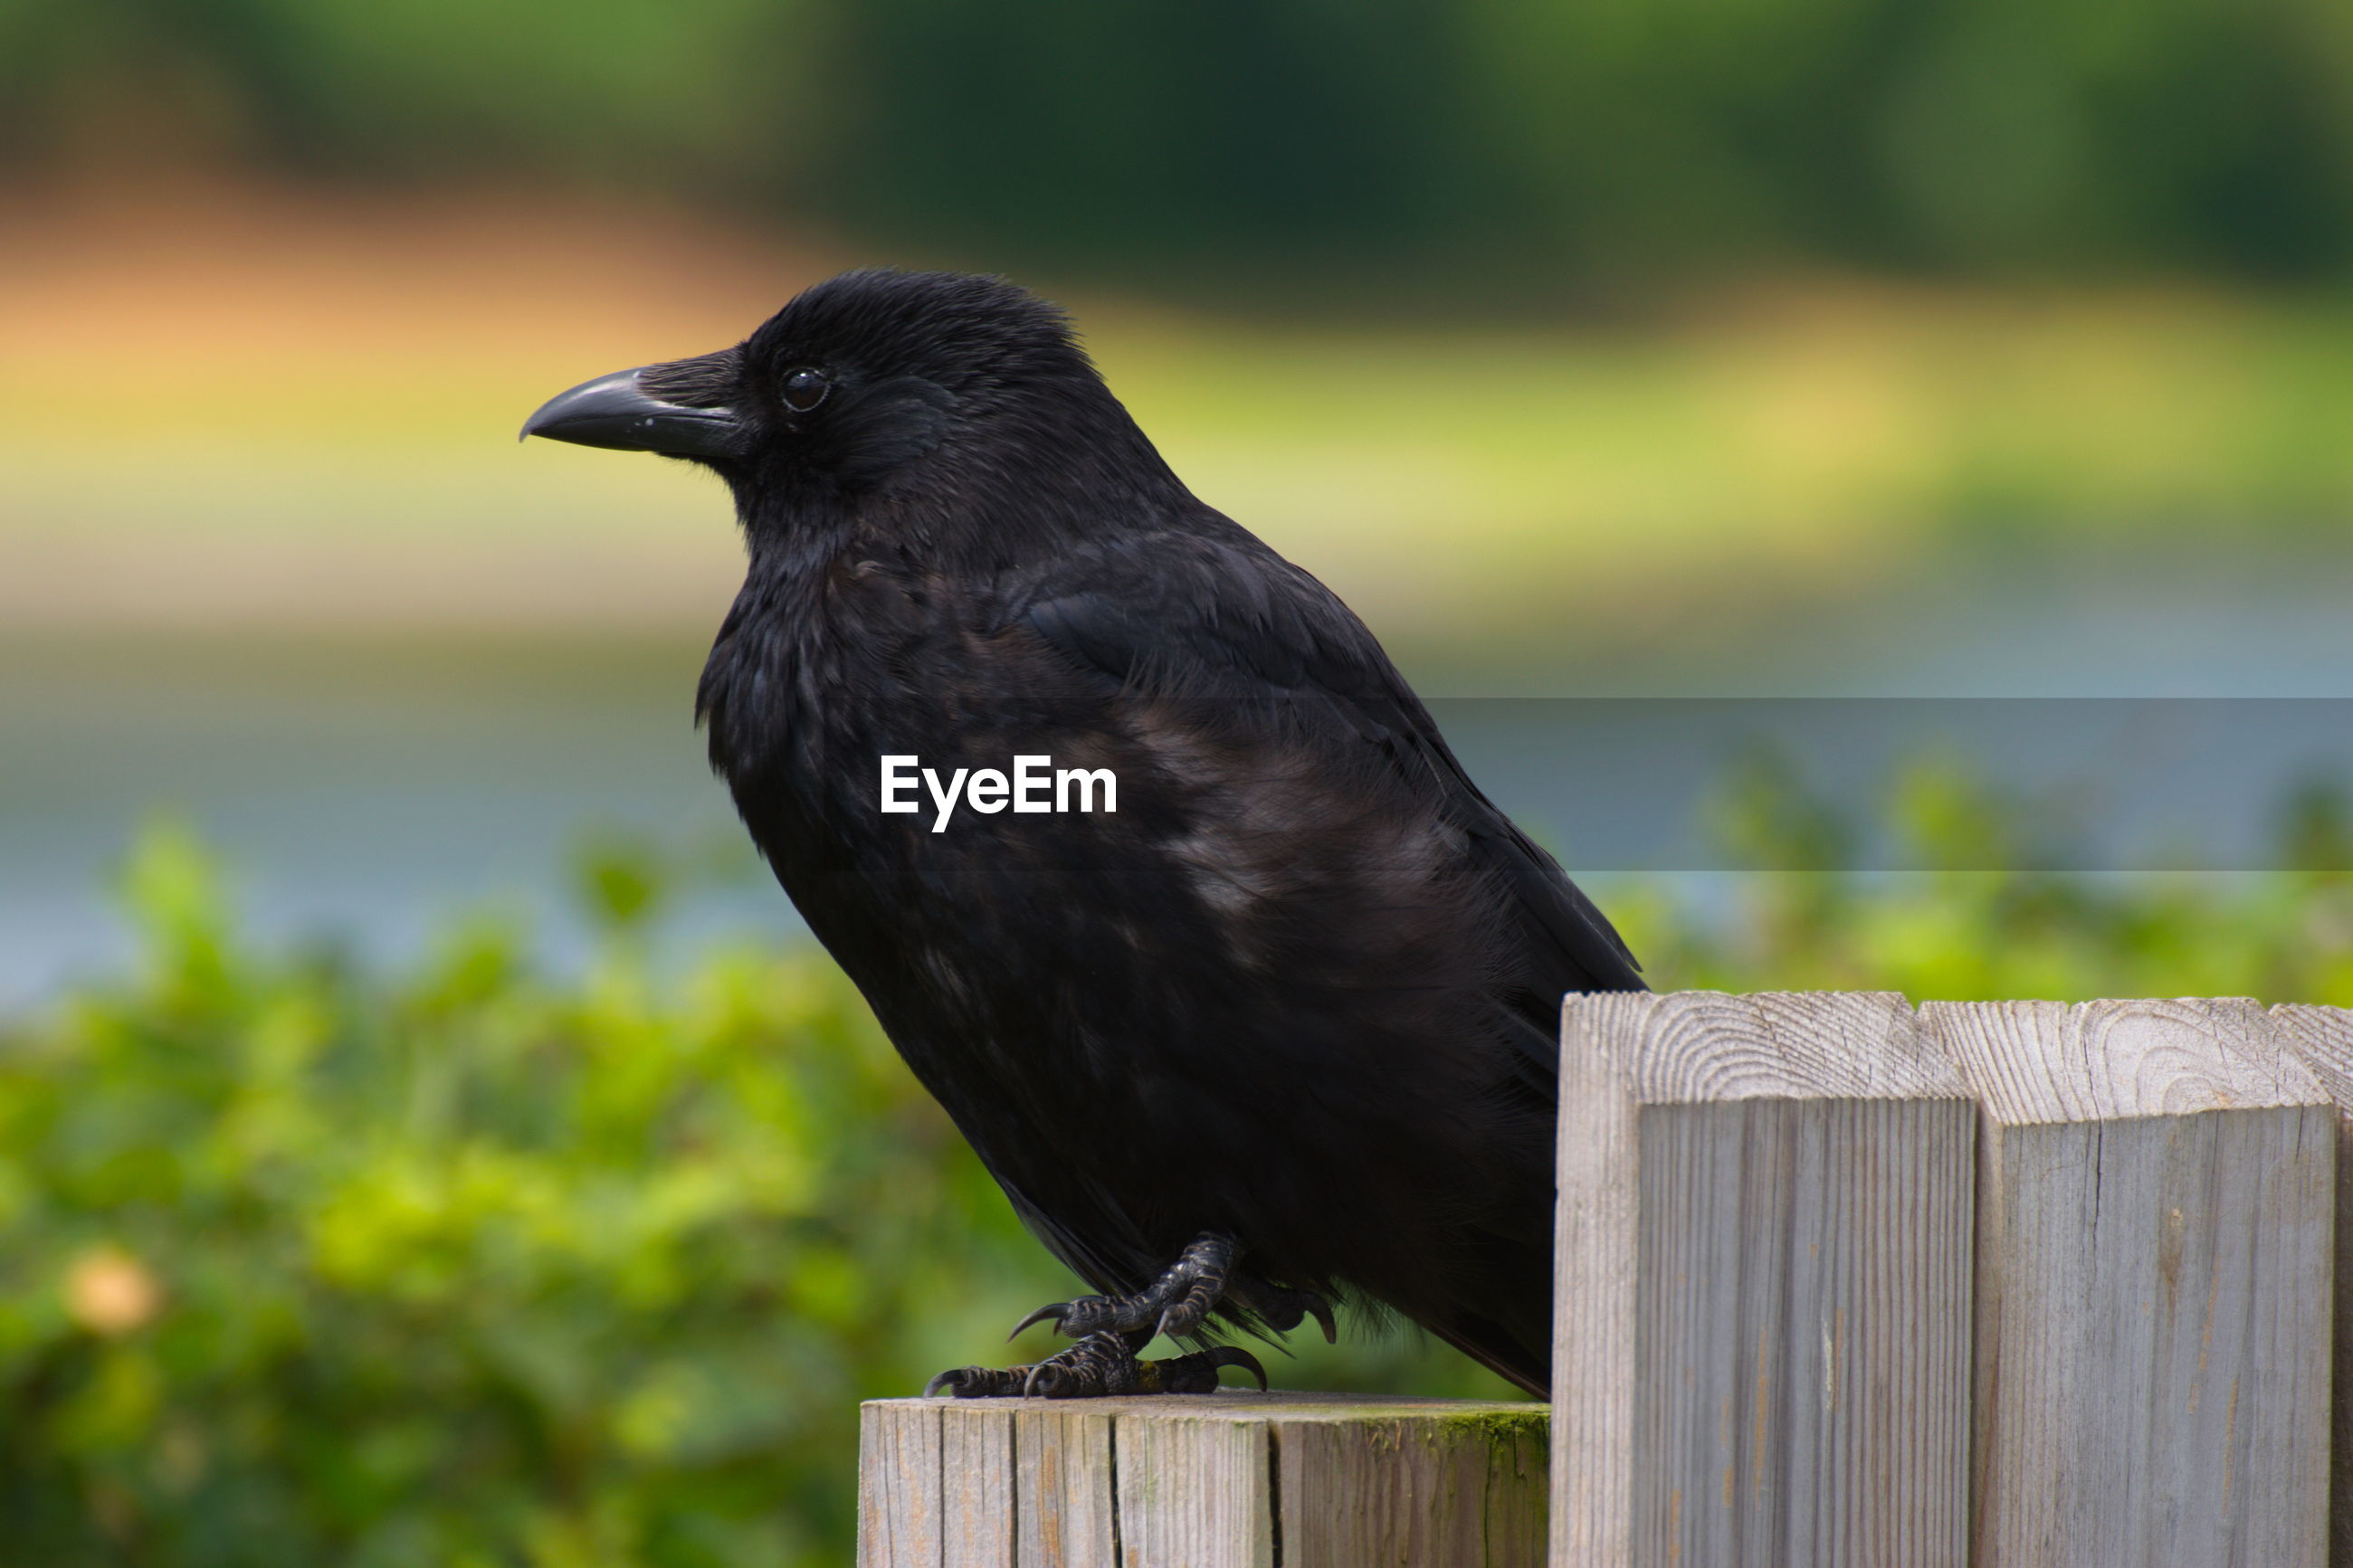 CLOSE-UP OF BLACK BIRD PERCHING ON WOODEN POST